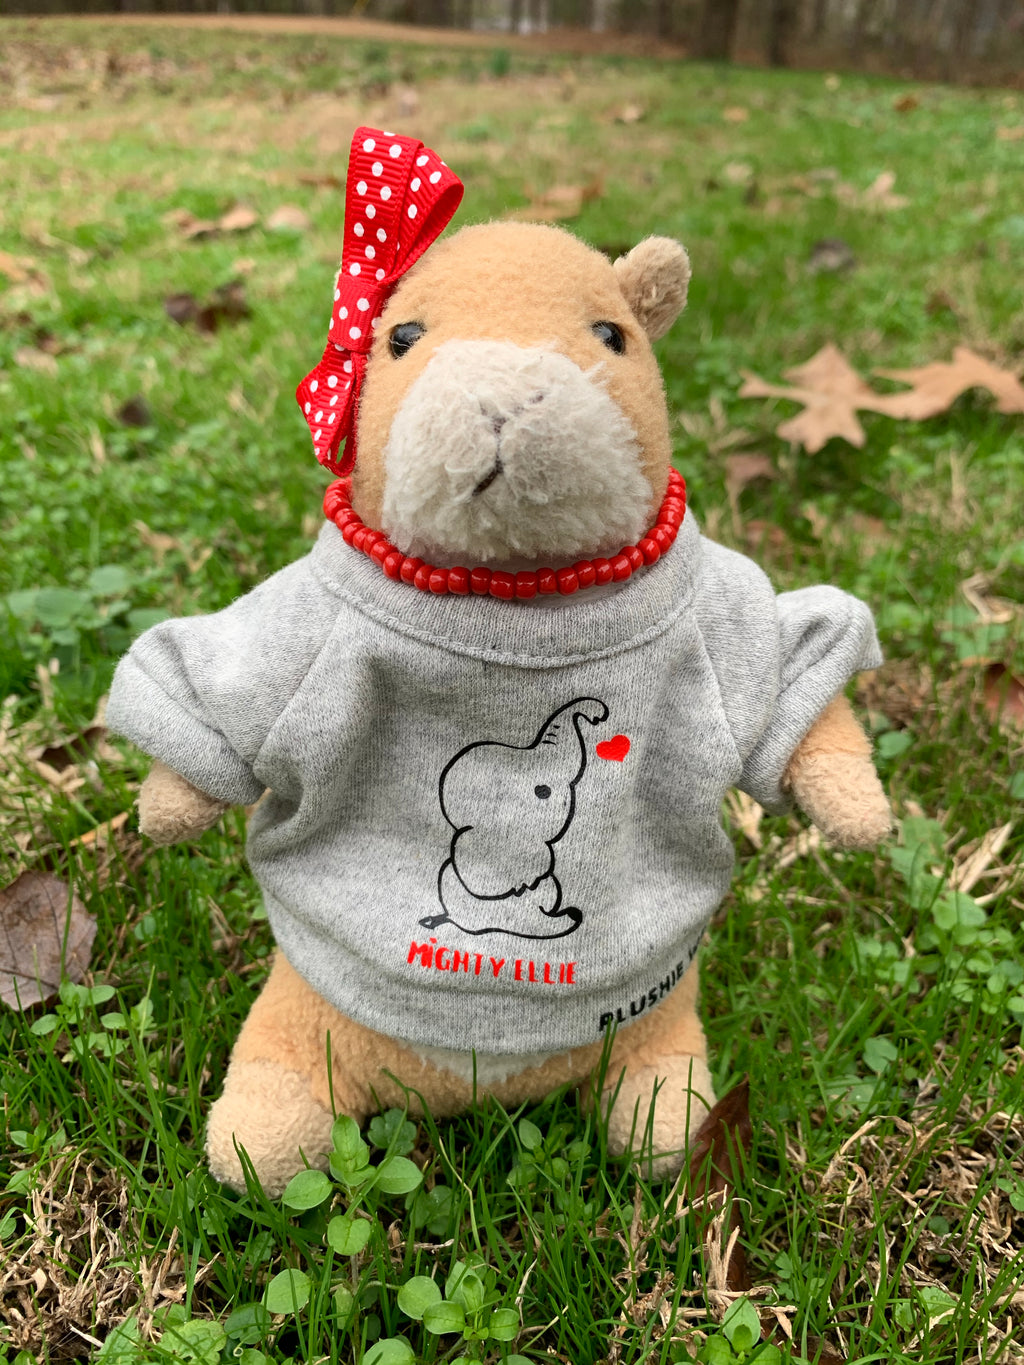 Mighty Ellie Plushie Shirt